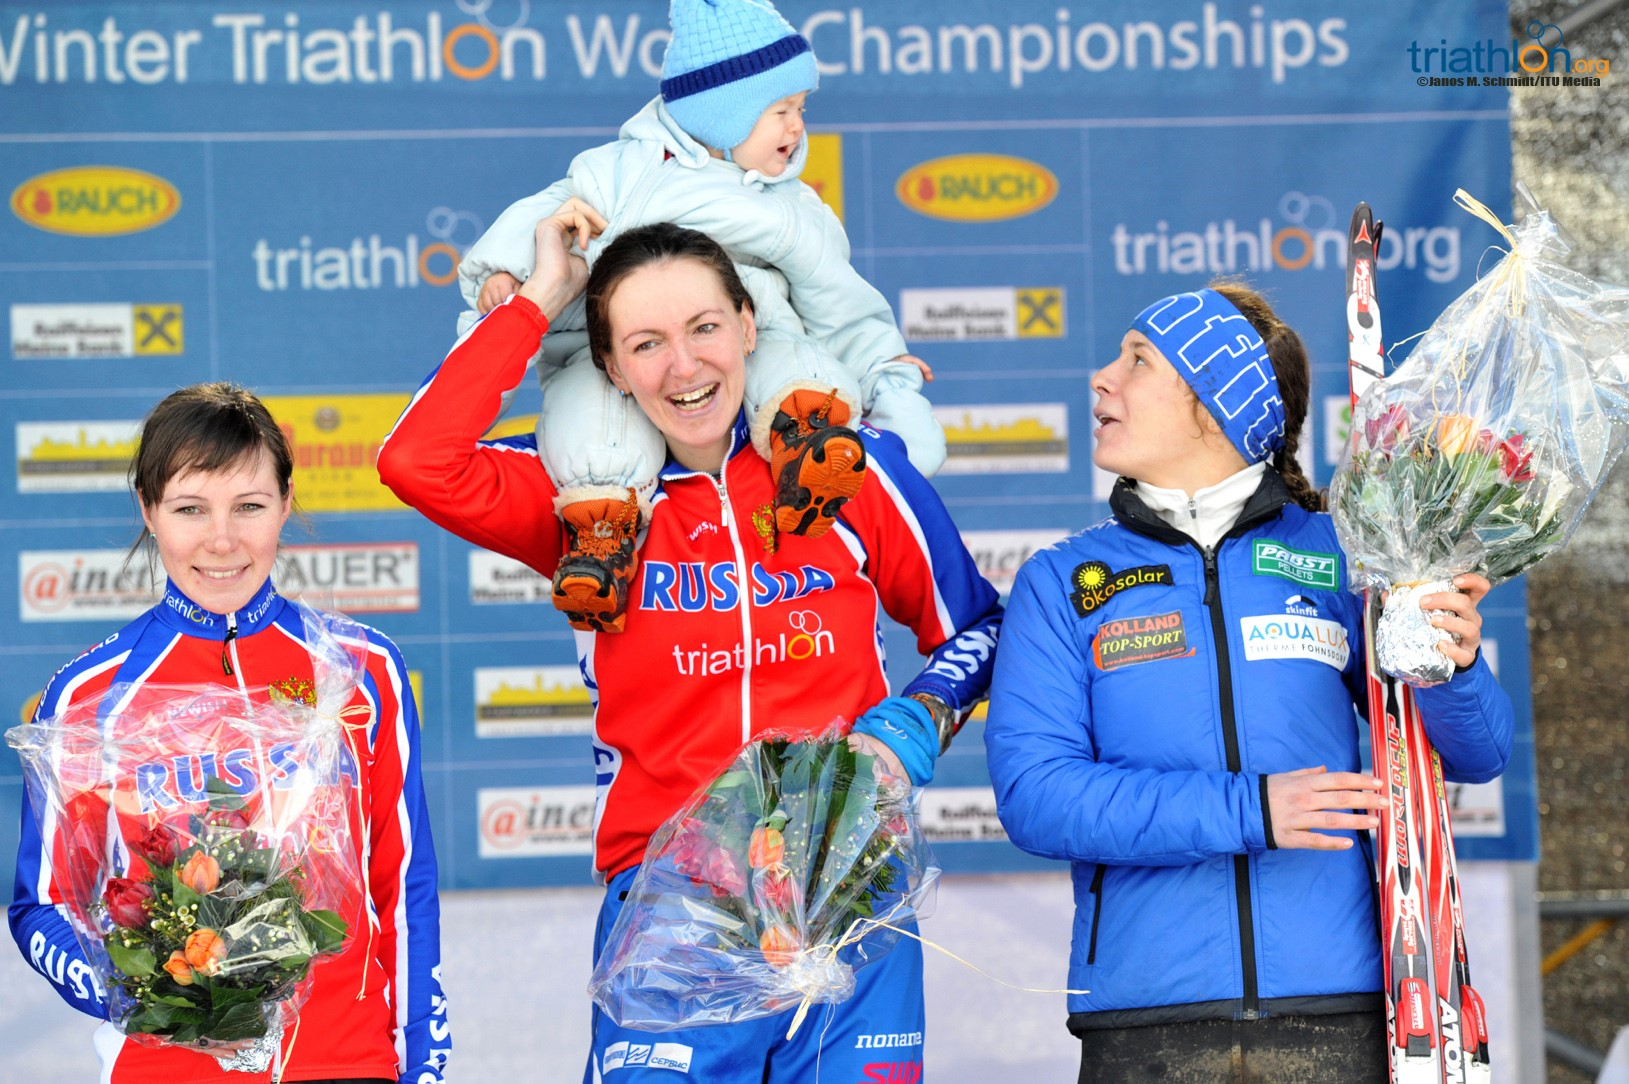 ITU Winter Triathlon World Championship Women's Podium   www.DirtTRI.com